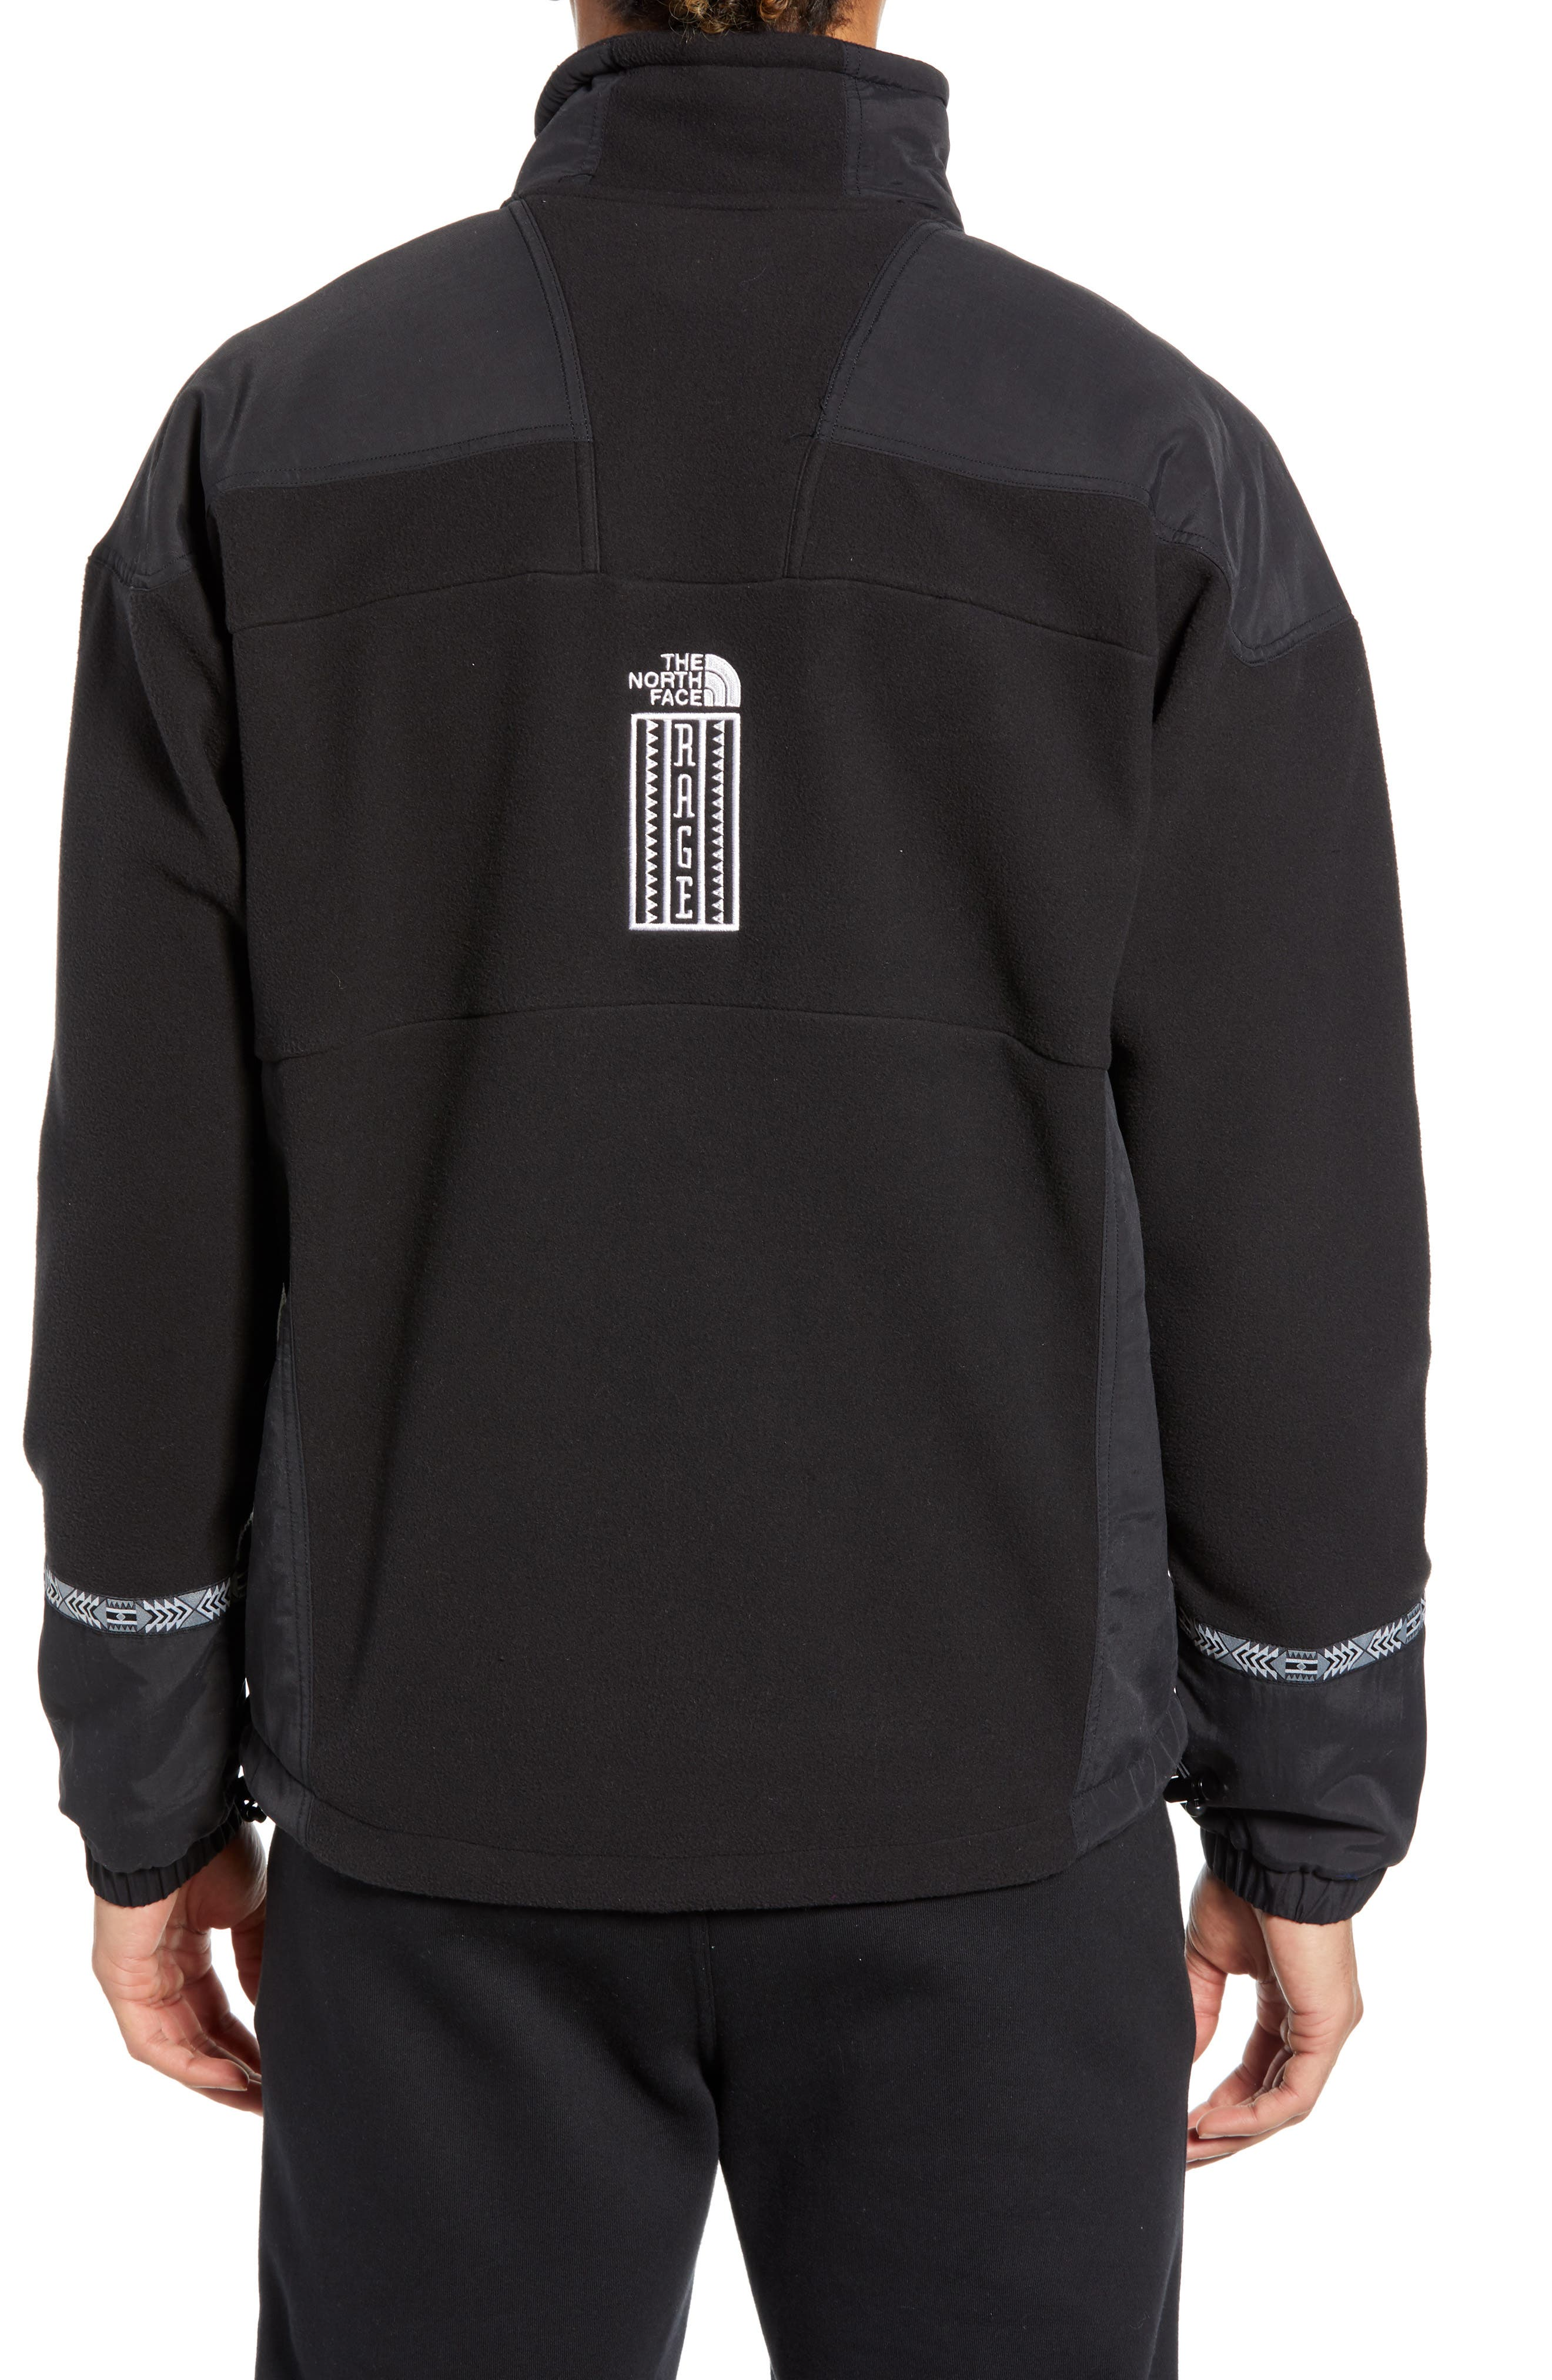 THE NORTH FACE, 1992 Rage Collection Fleece Anorak, Alternate thumbnail 2, color, 001